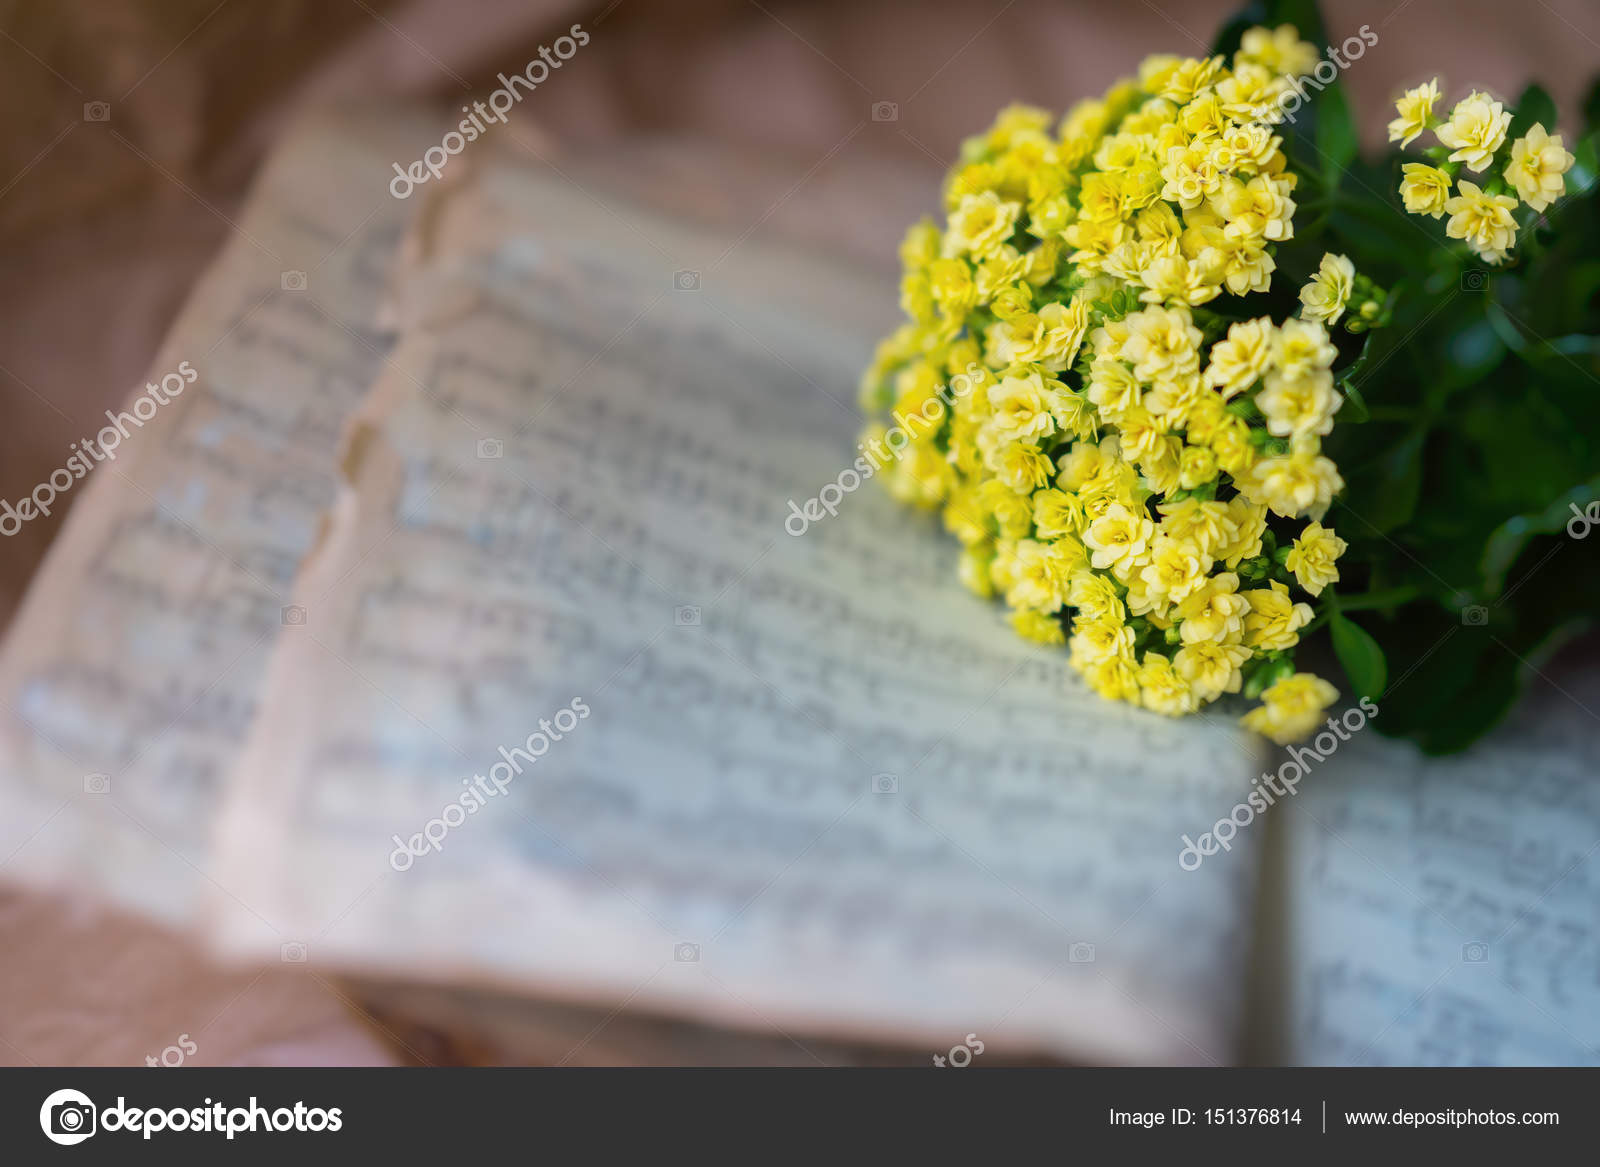 Abstract Vintage Grunge Music Background Yellow Flowers On Yellowed